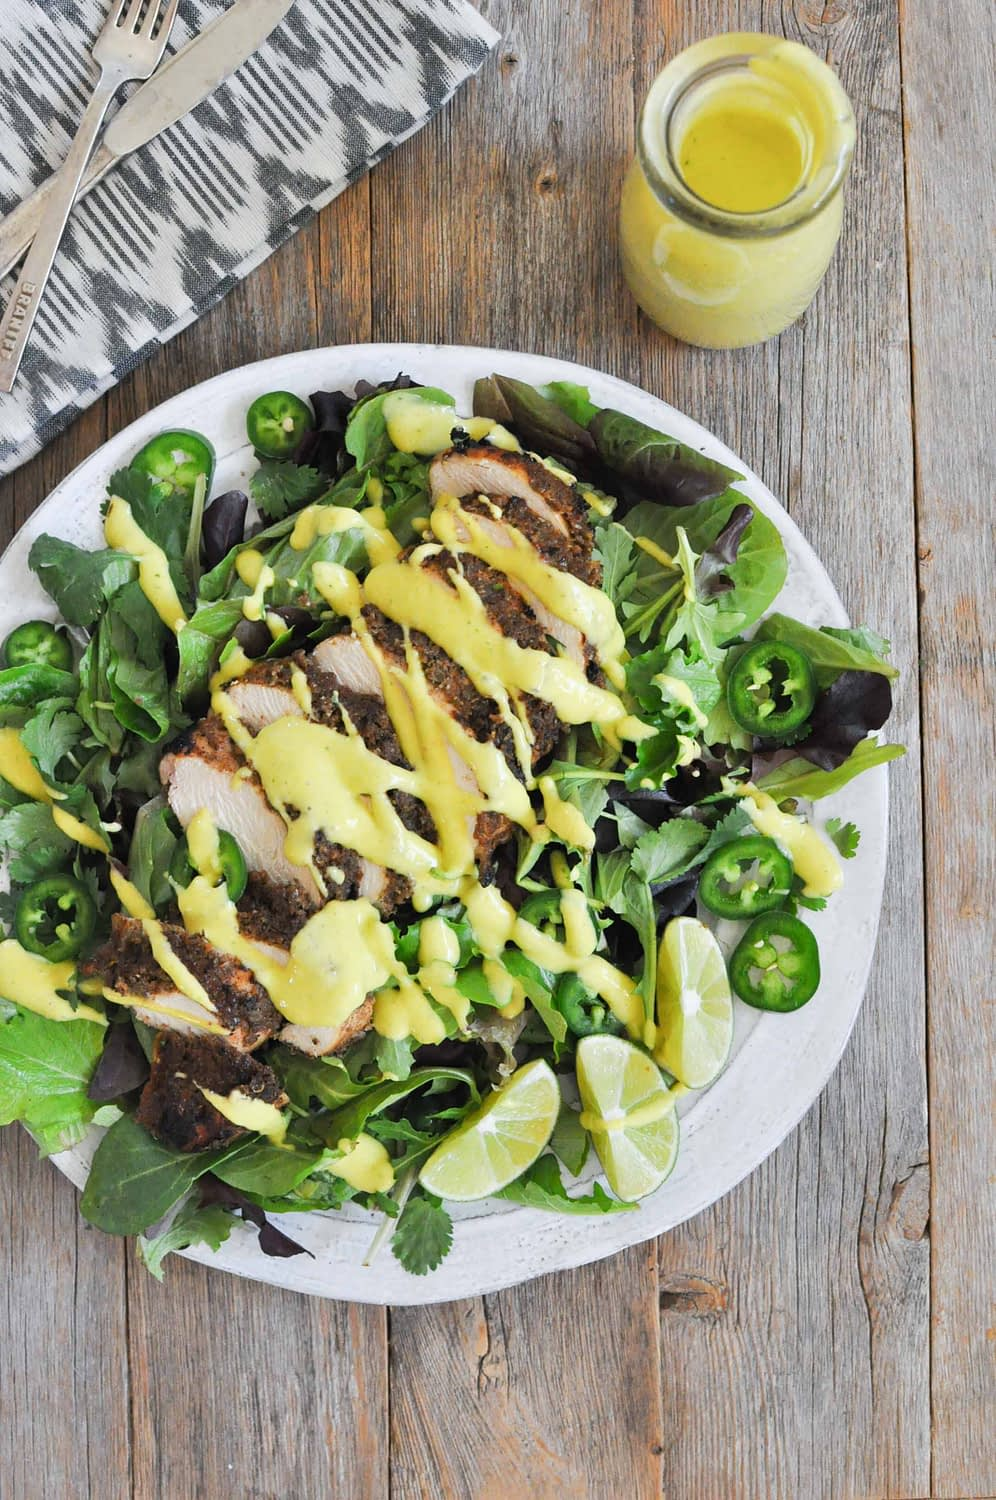 Creamy Mango Jalapeno Dressing over a chicken salad